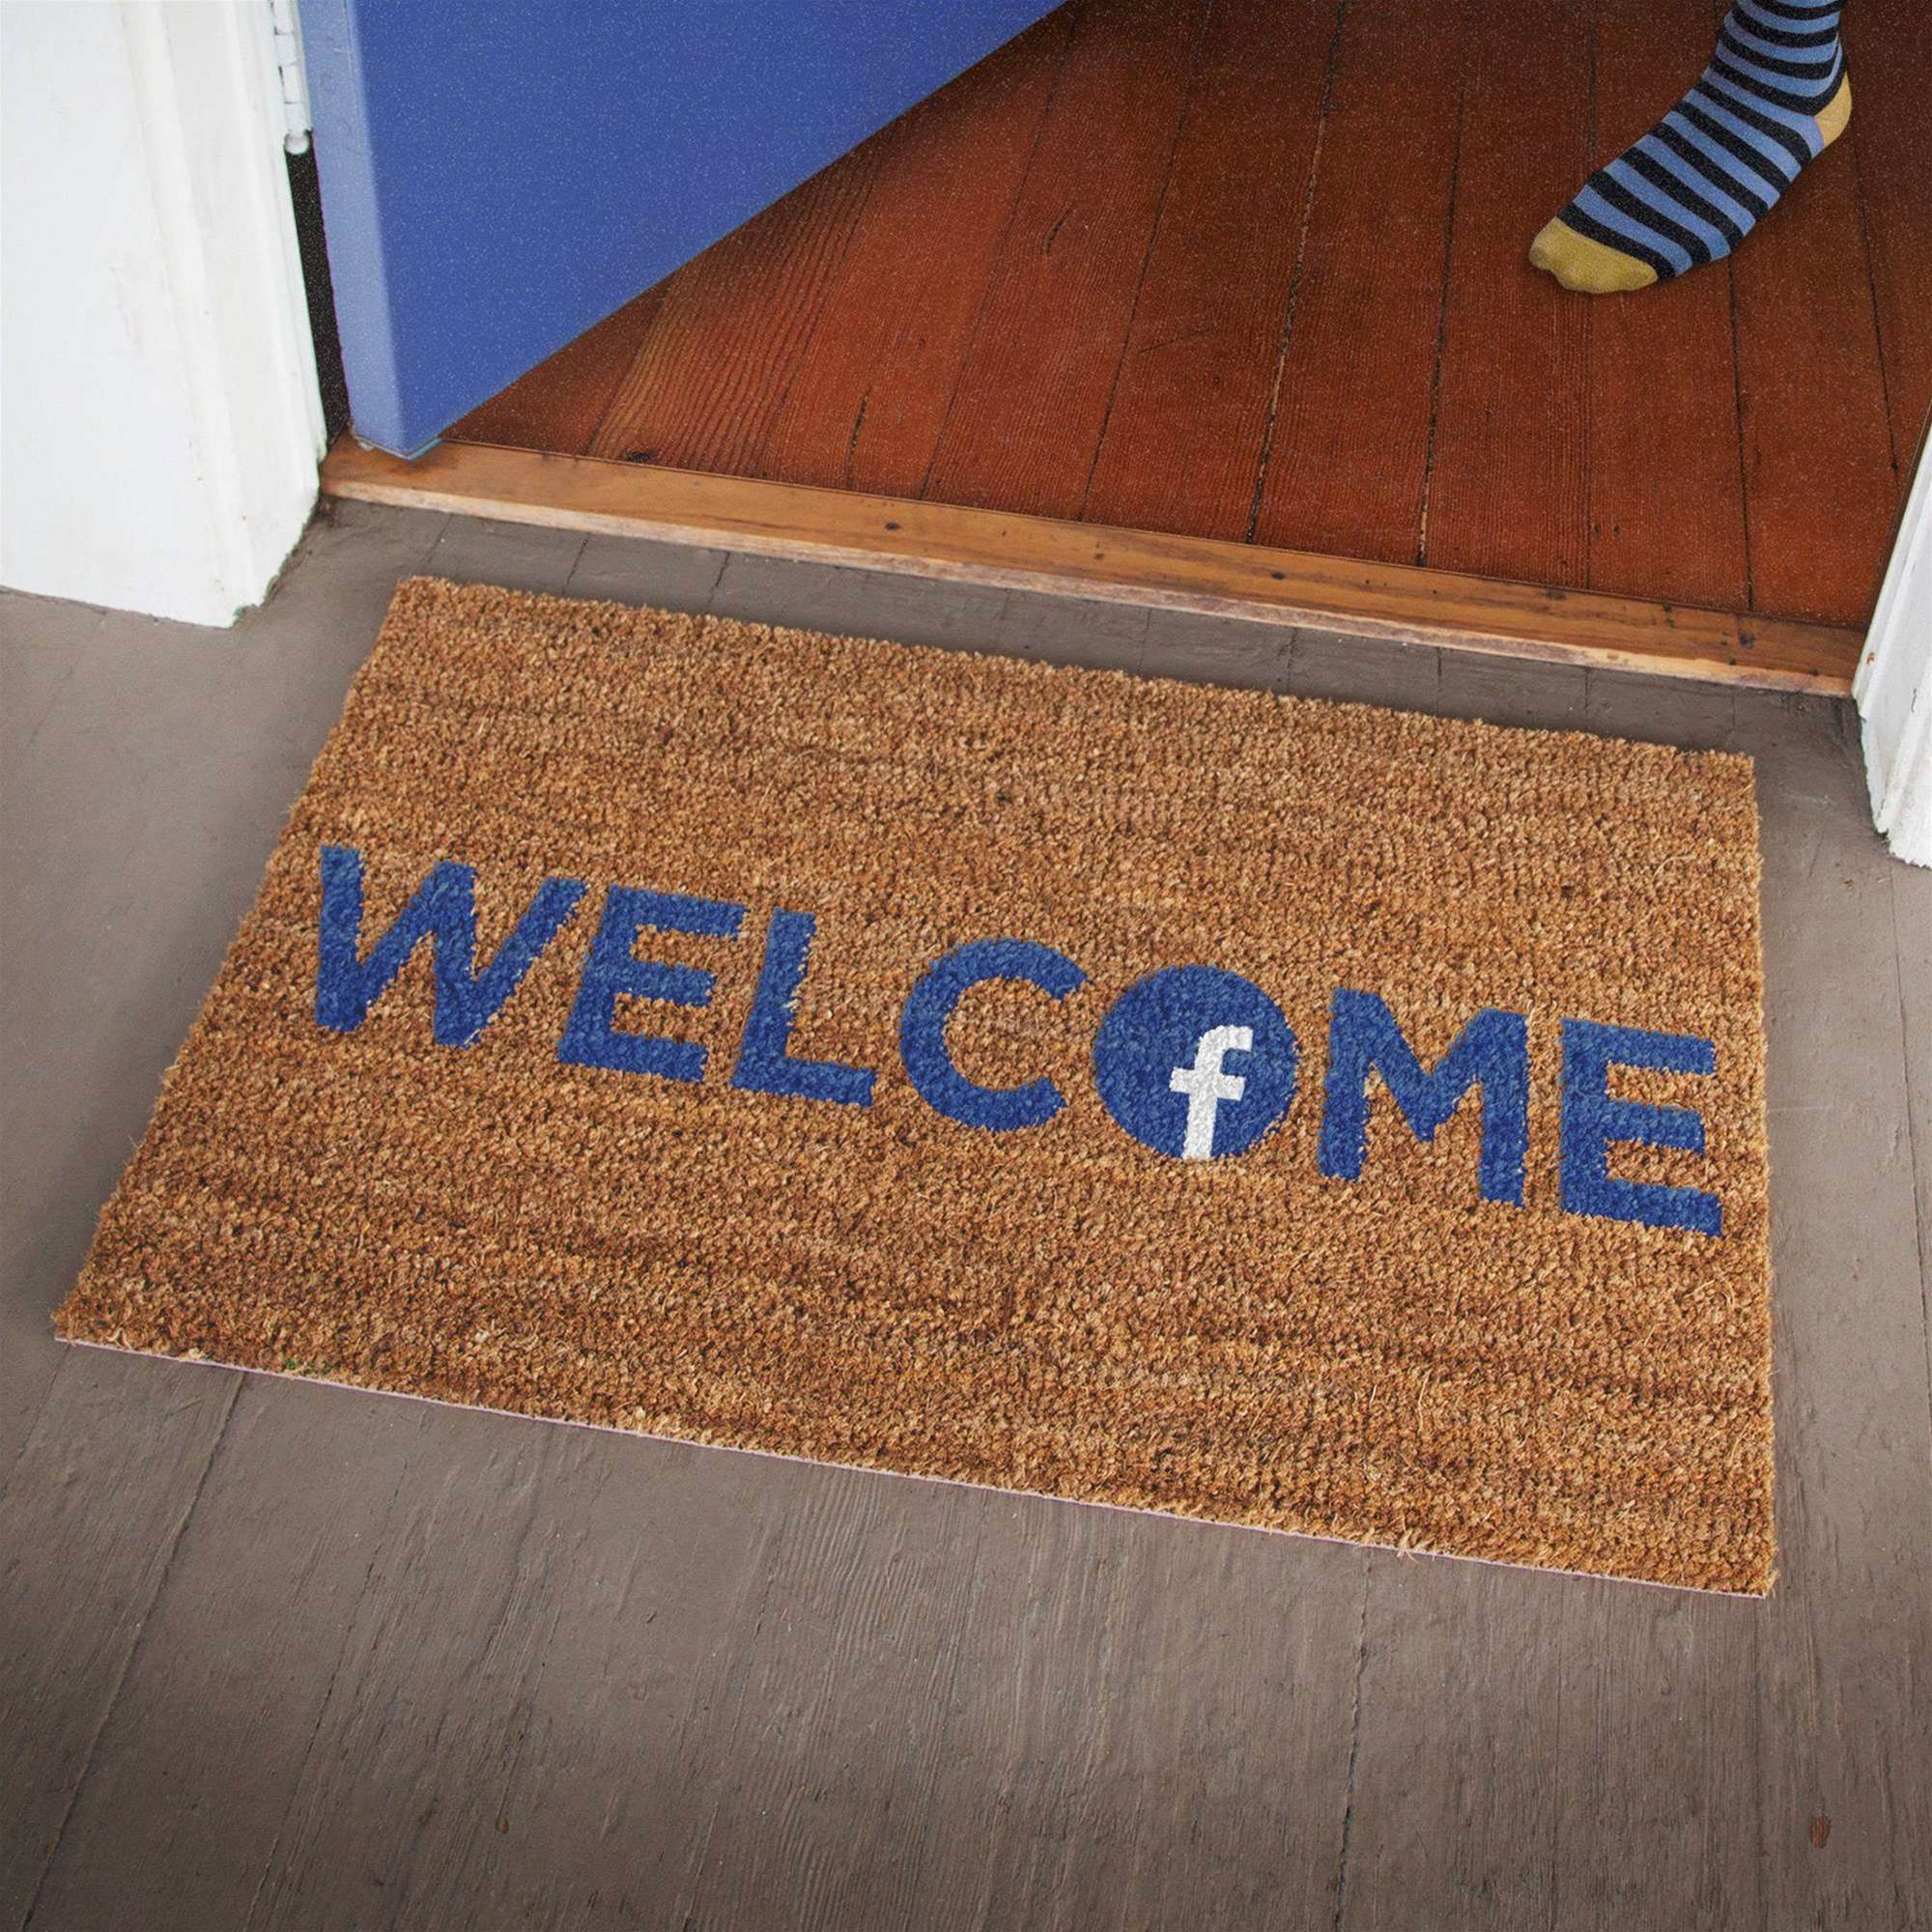 Facebook unveils 'Home' software for Android